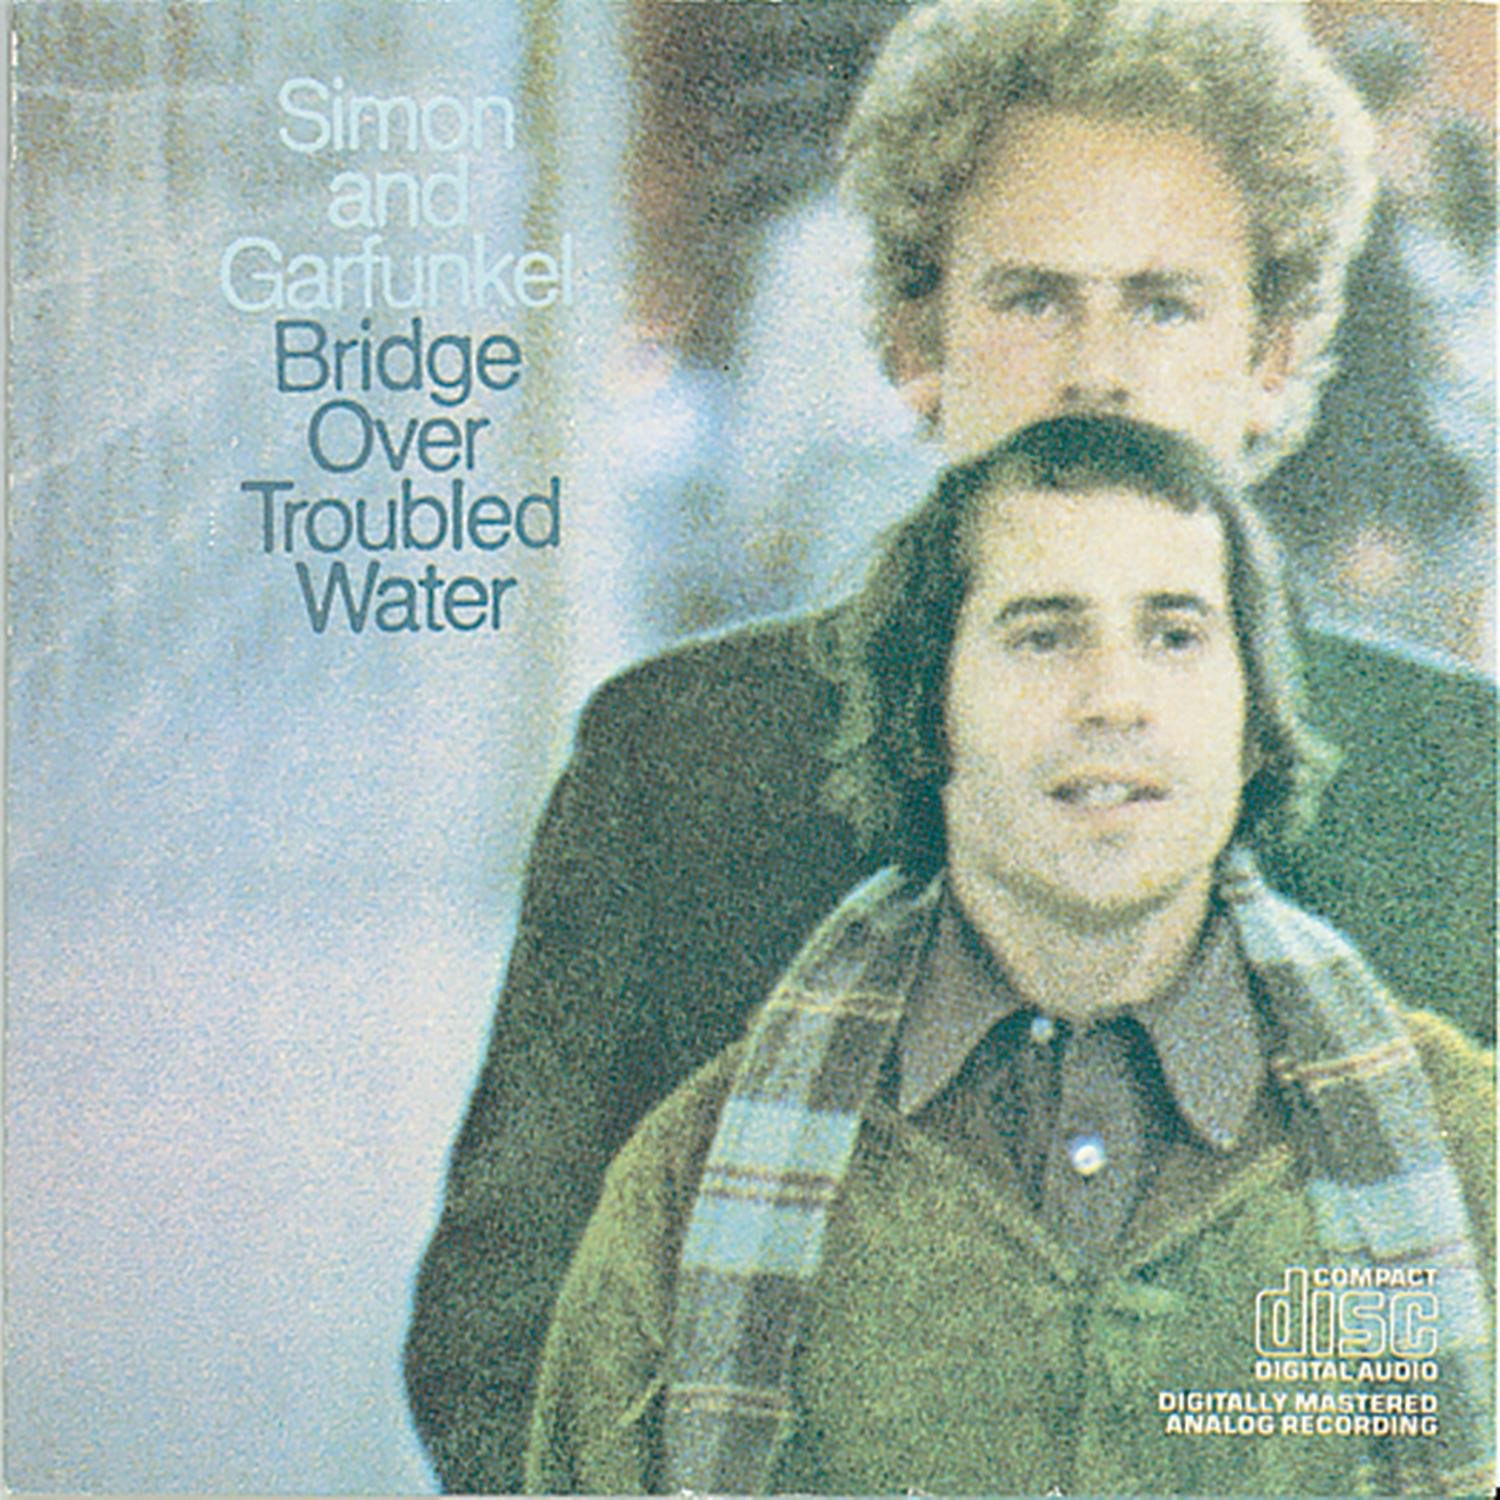 Bridge-Over-Troubled-Water-Simon-And-Garfunkl-1631848472